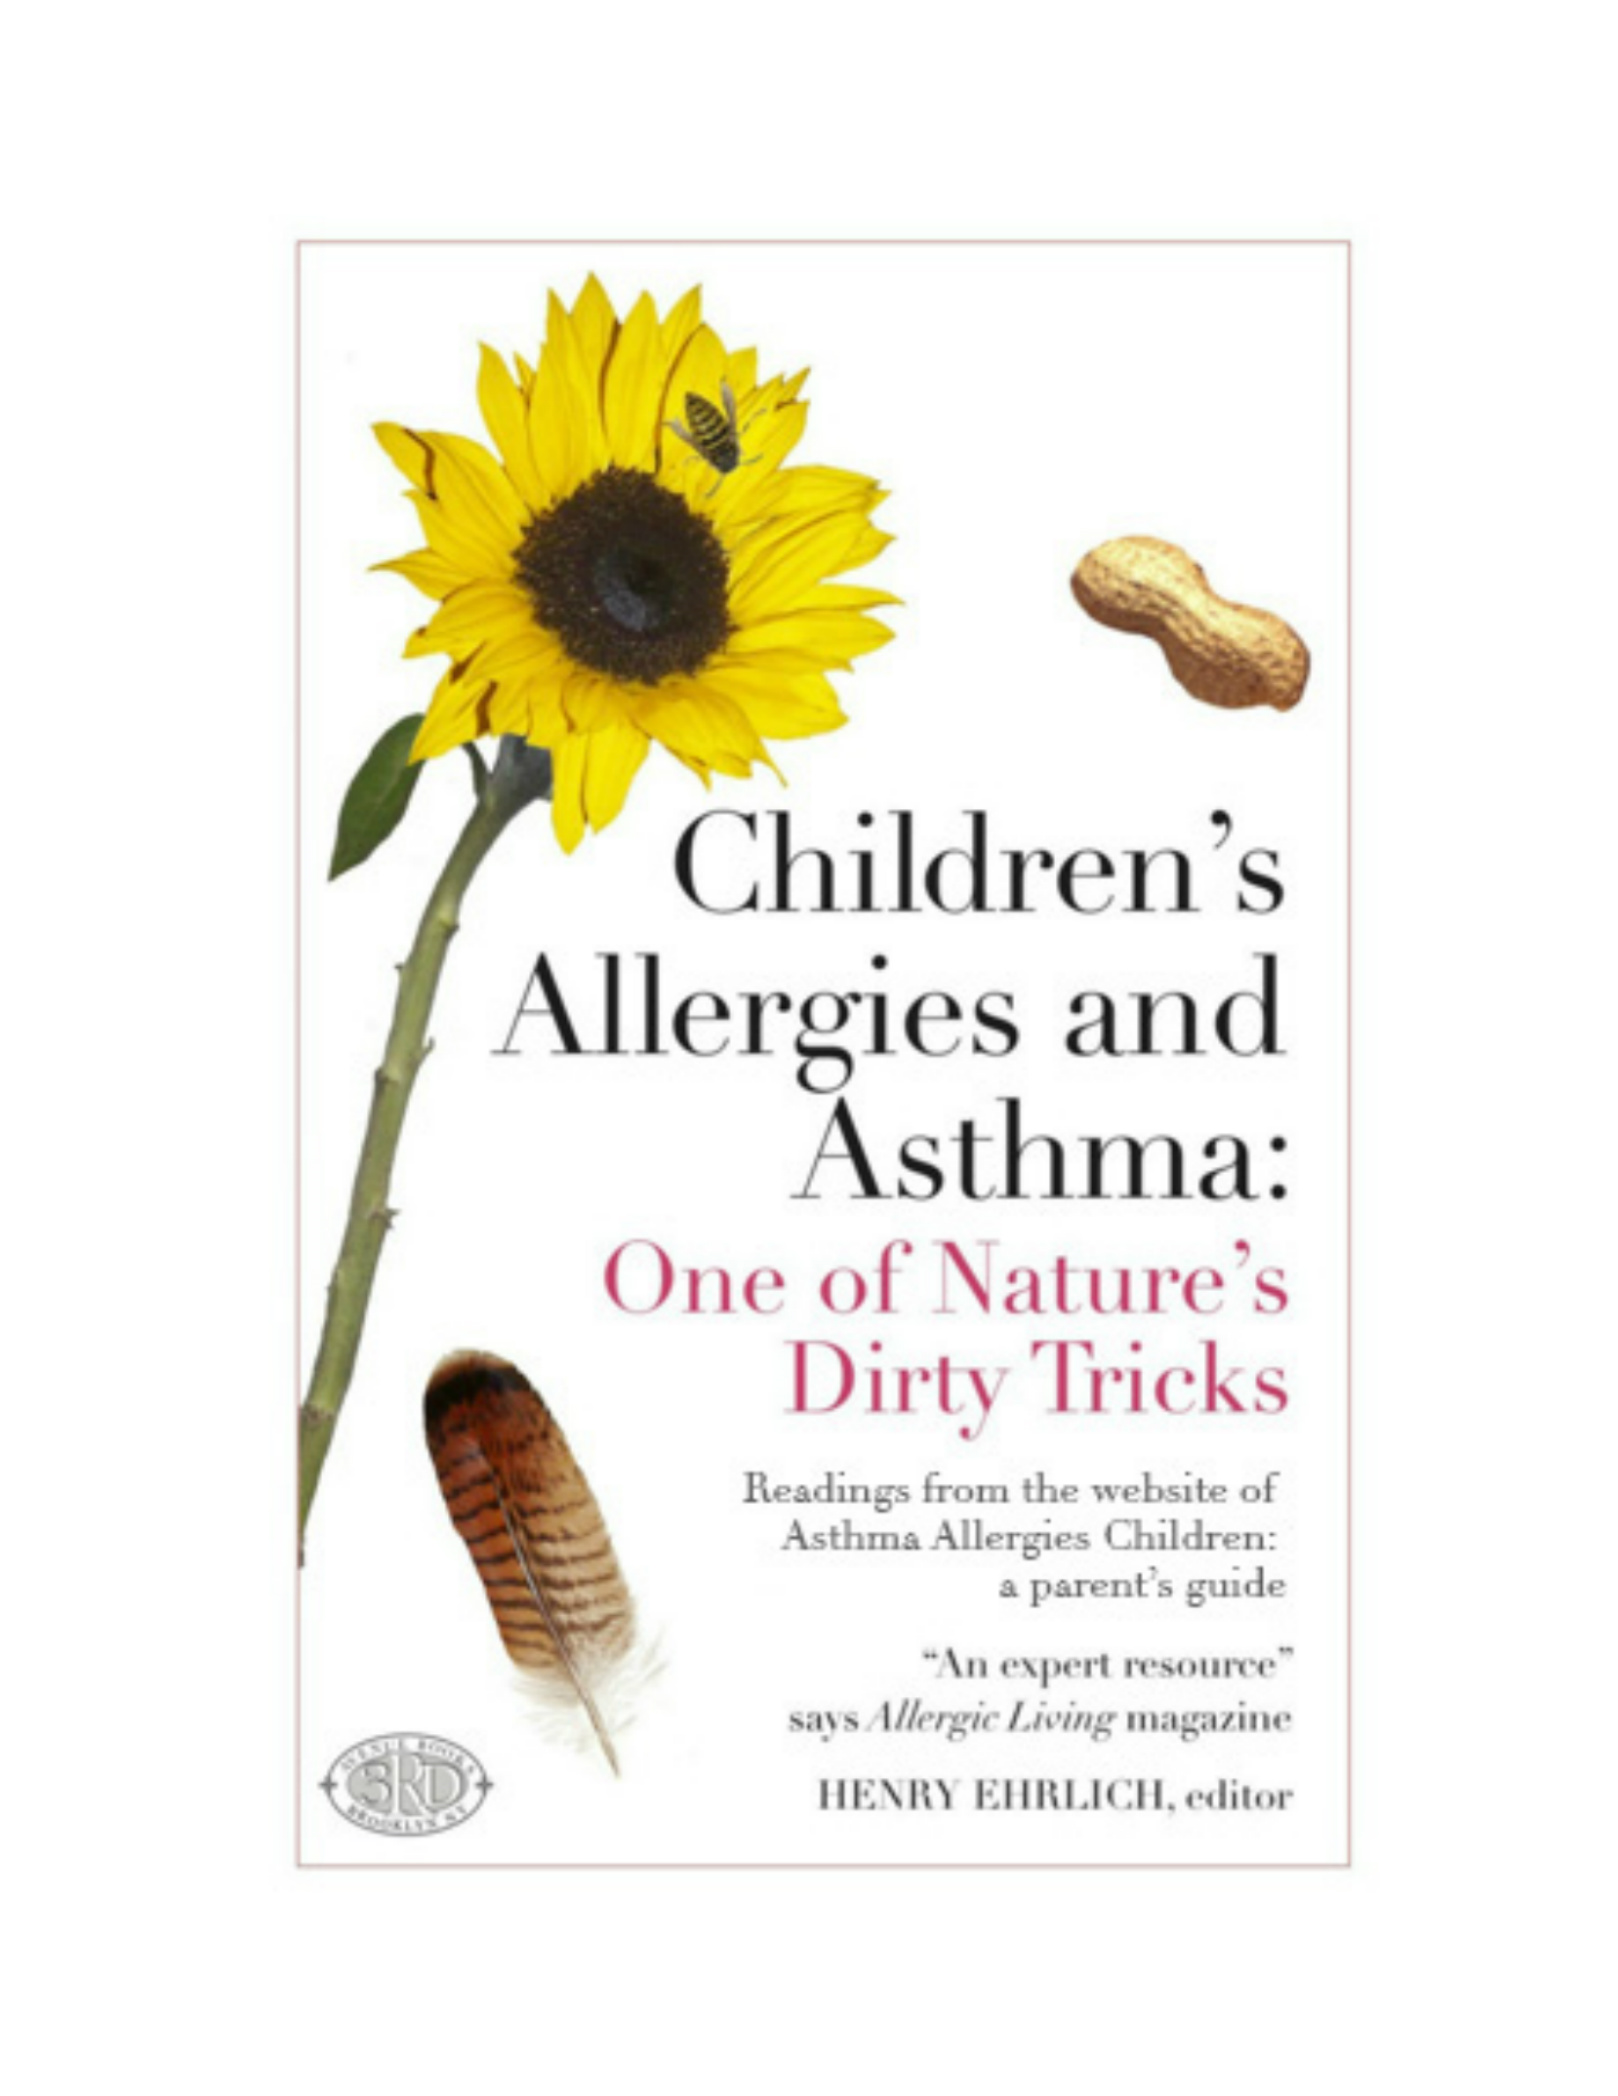 Children's Allergies and Asthma: One of Nature's Dirty Tricks